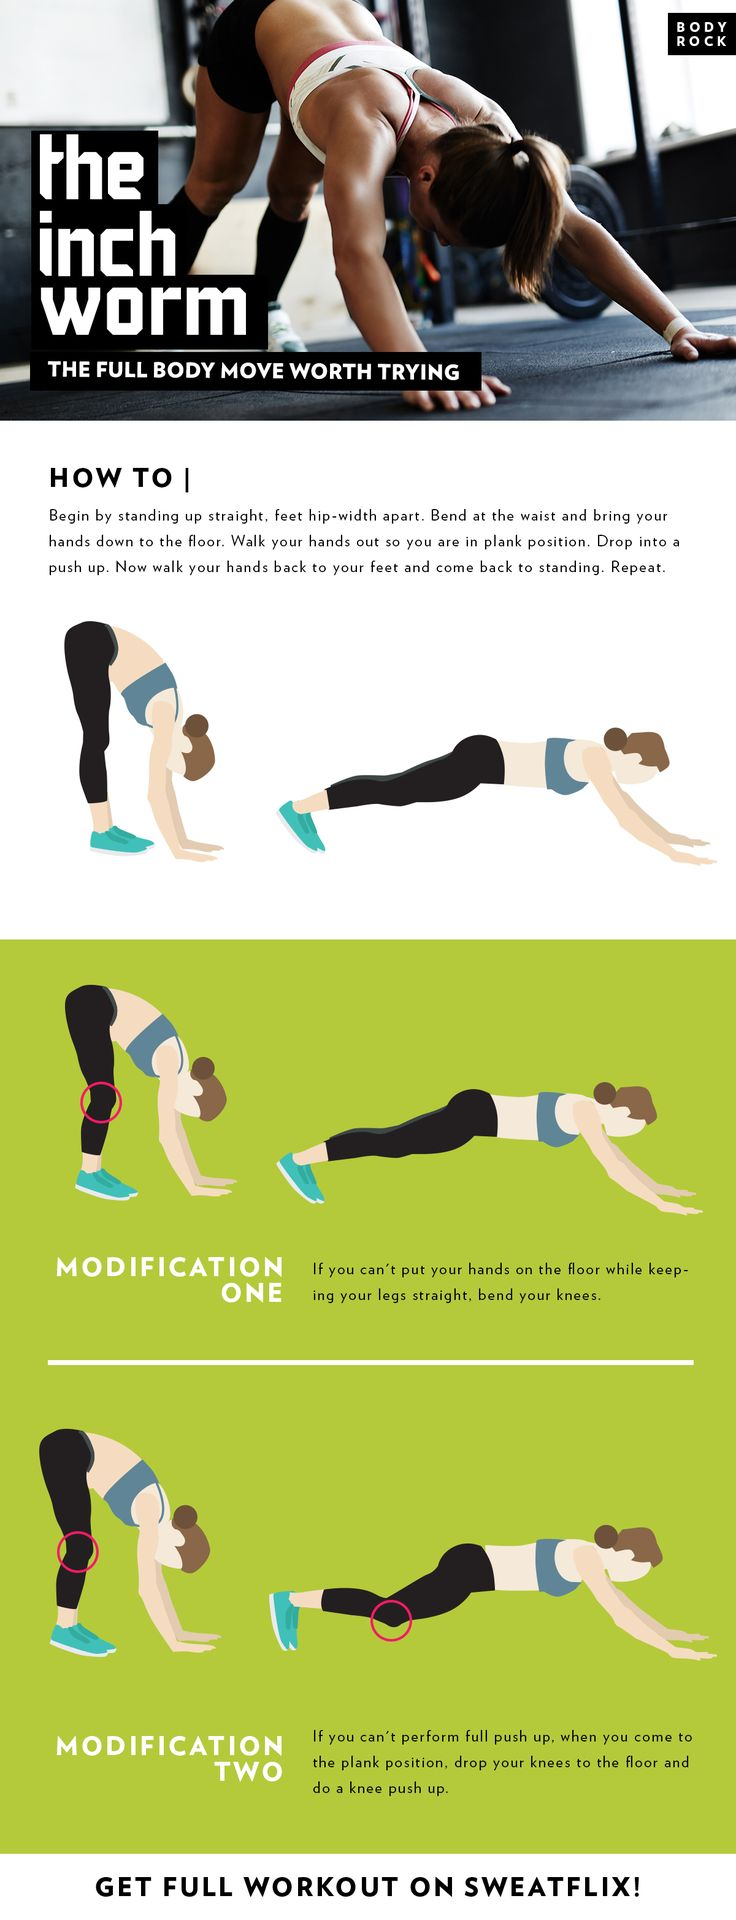 If you're looking for a move that will engage and challenge your entire body, the inch worm is it! Not only will you get a solid core workout, you will also feel it in your arms, shoulders, chest, hamstrings and calves!